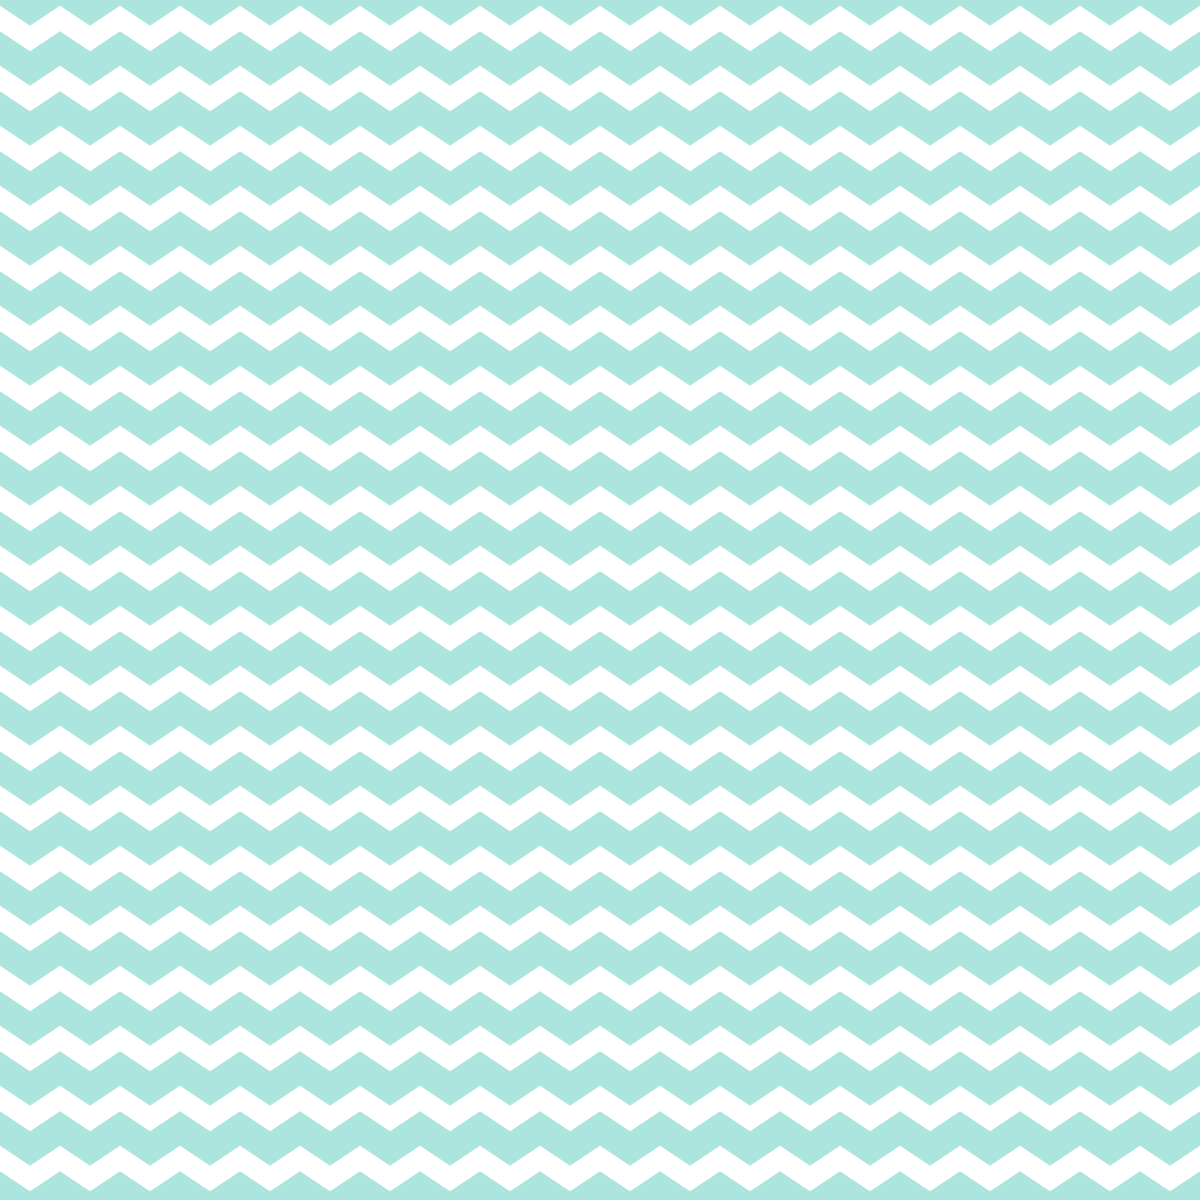 Free Digital Chevron Scrapbooking Papers Ausdruckbares